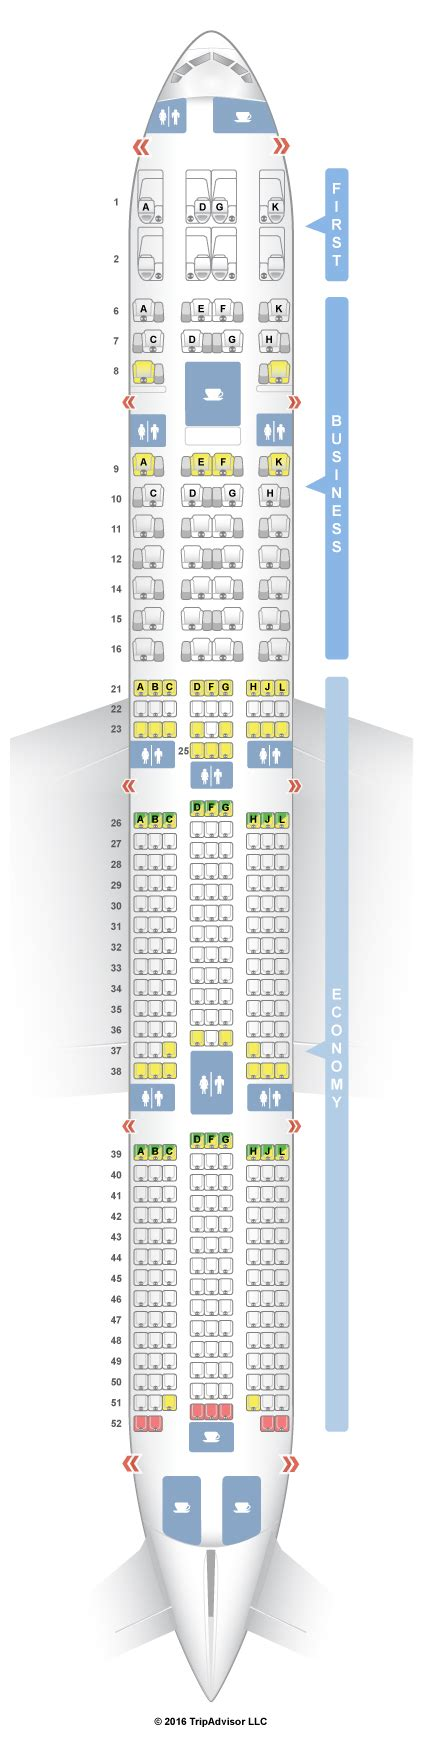 garuda plus seat layout seatguru seat map garuda indonesia boeing 777 300er 77w v1